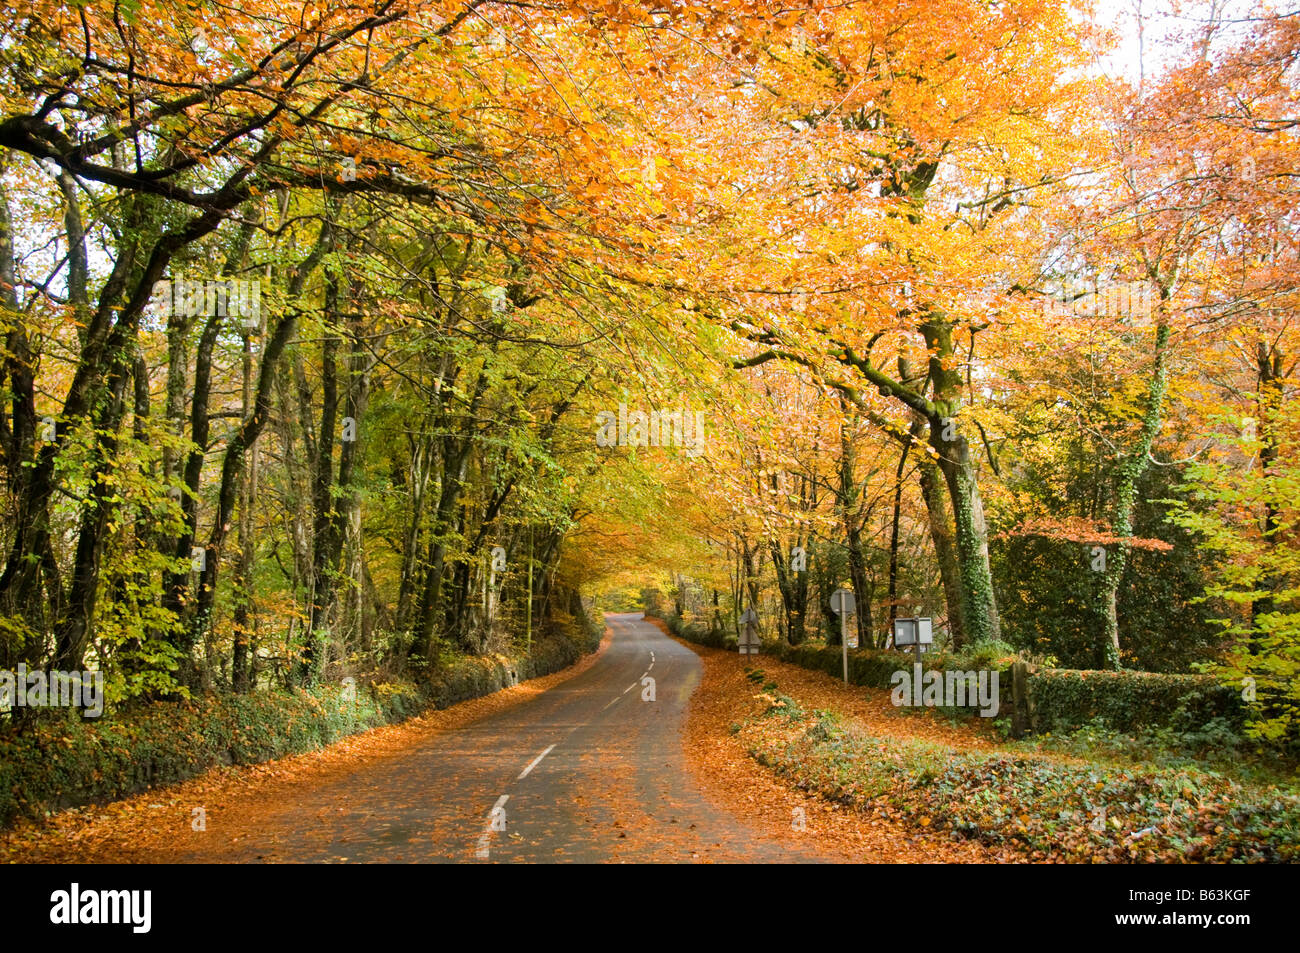 Autumn trees and leaves on a road to Dartmoor in Devon - Stock Image